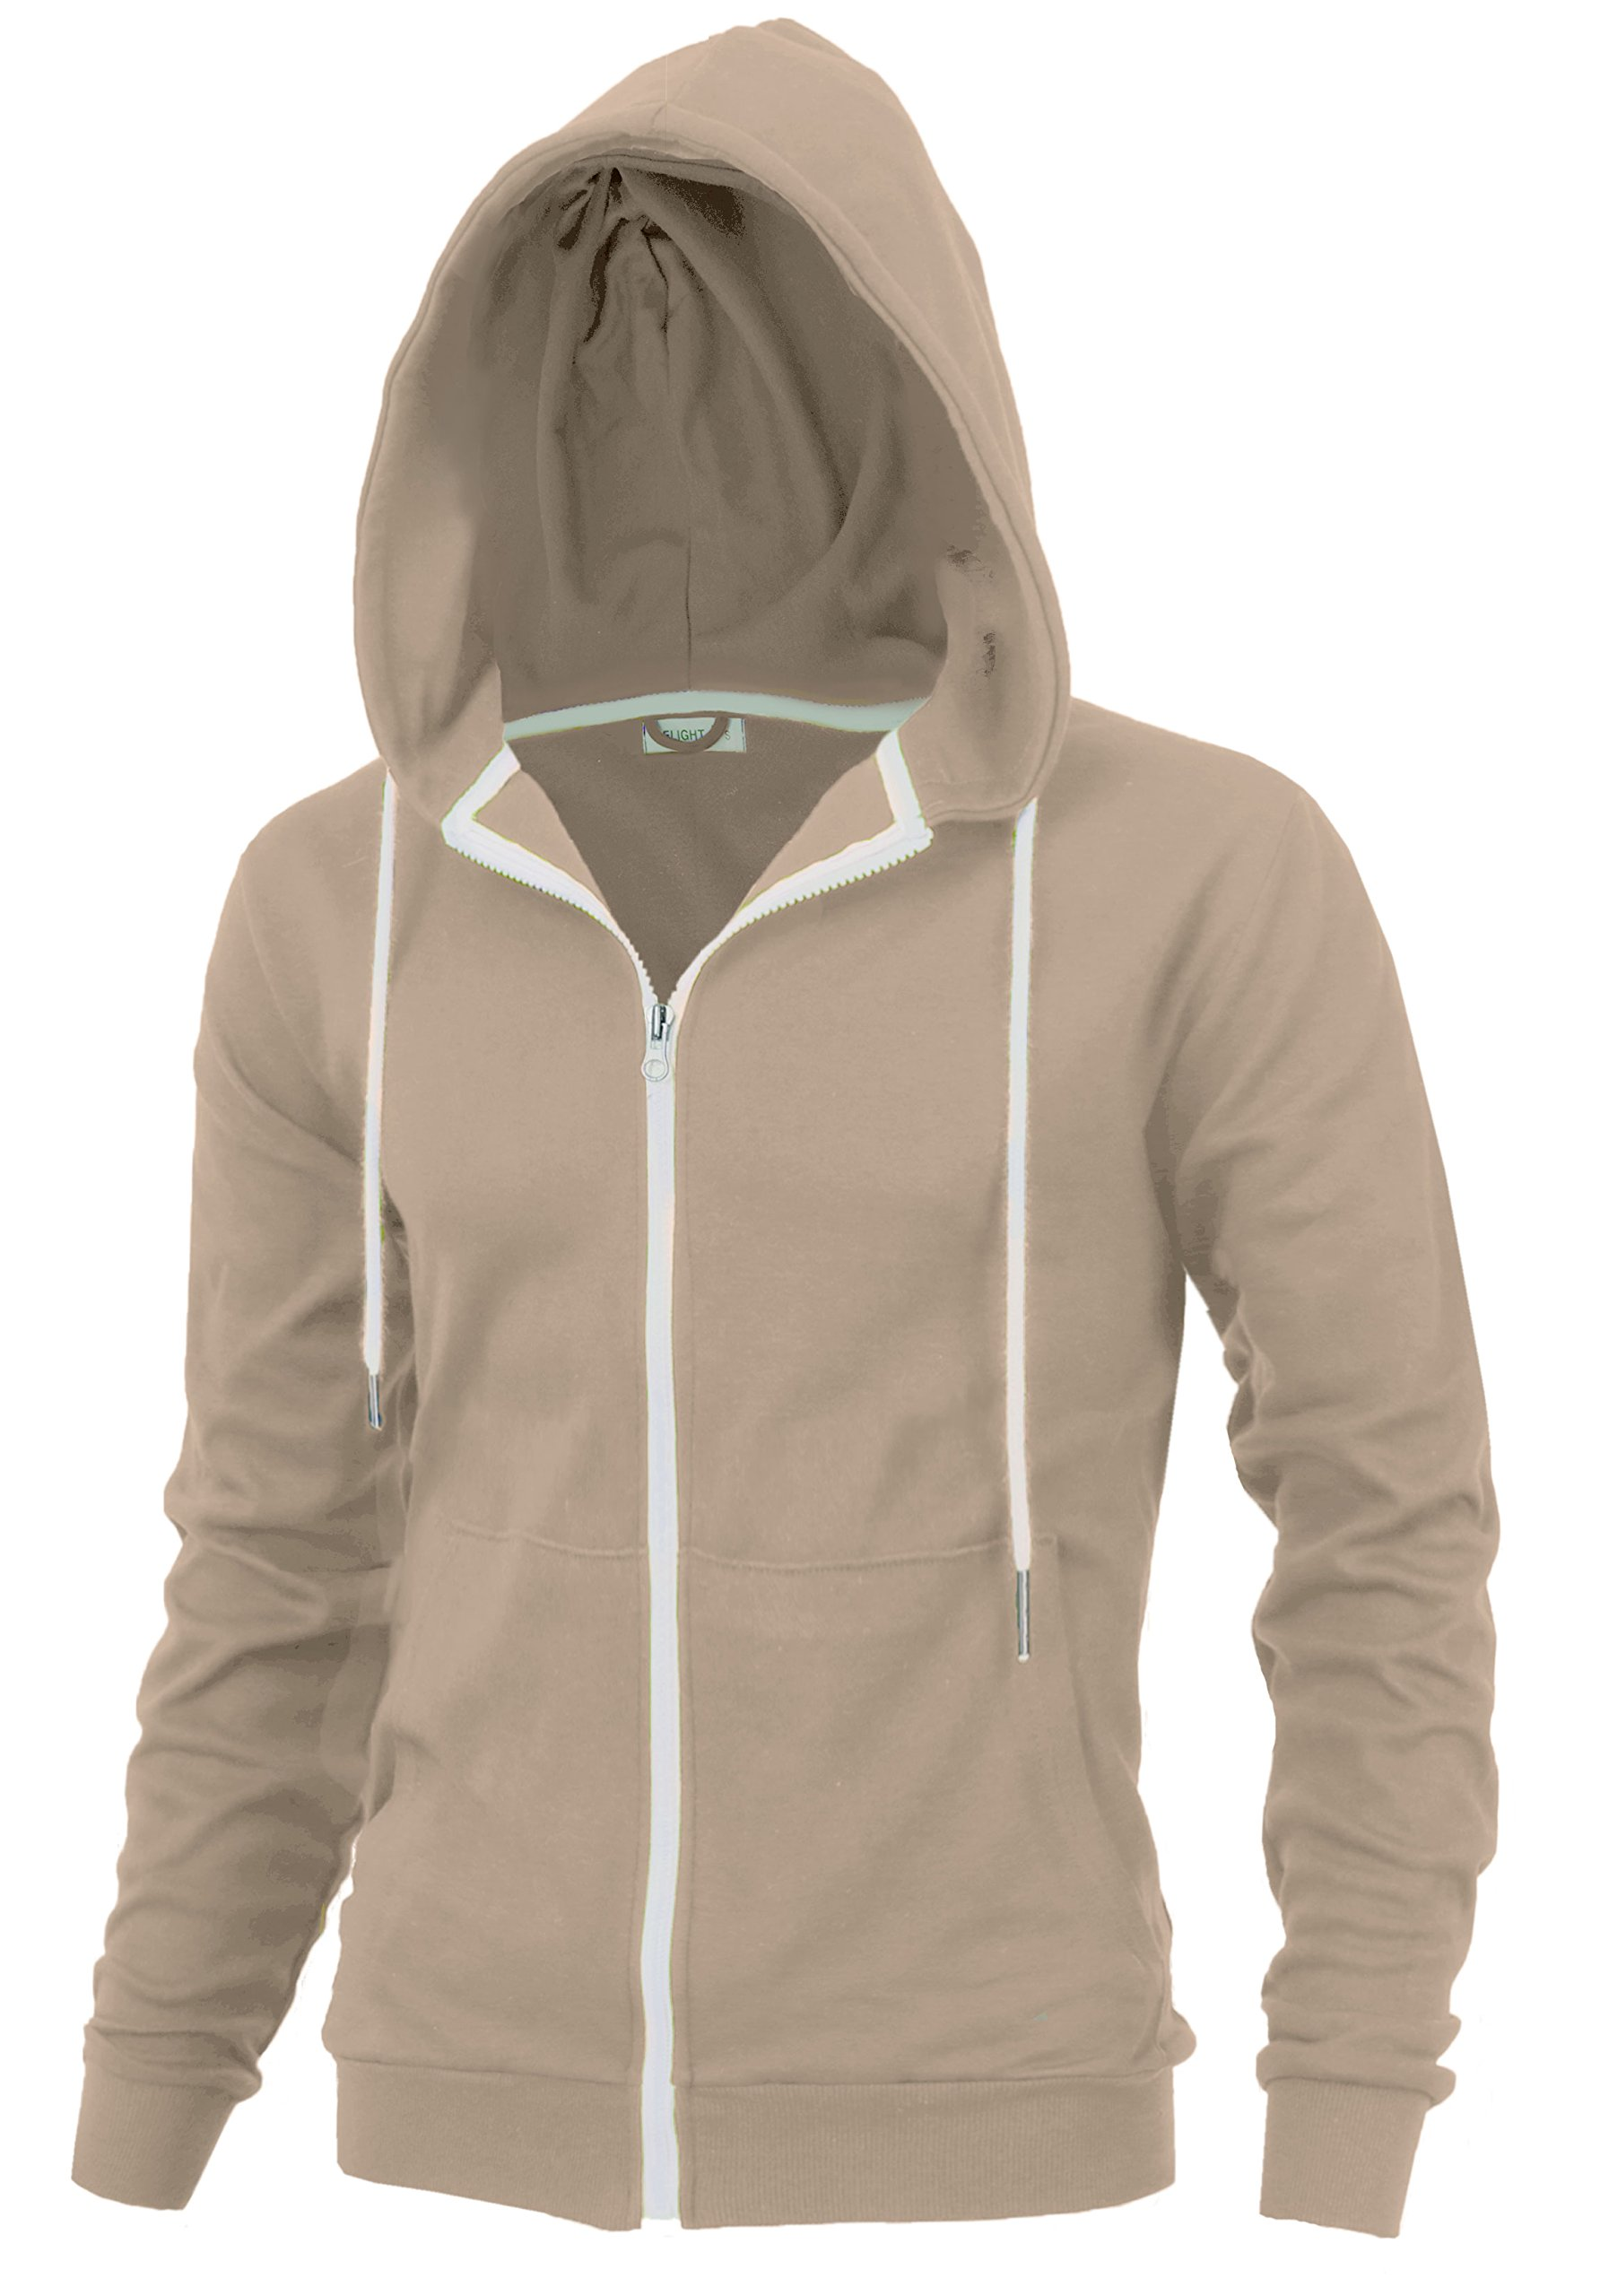 Delight Men's Fashion Fit Full-Zip Hoodie With Inner Cell Phone Pocket (US Small, Beige) by Lite Delights